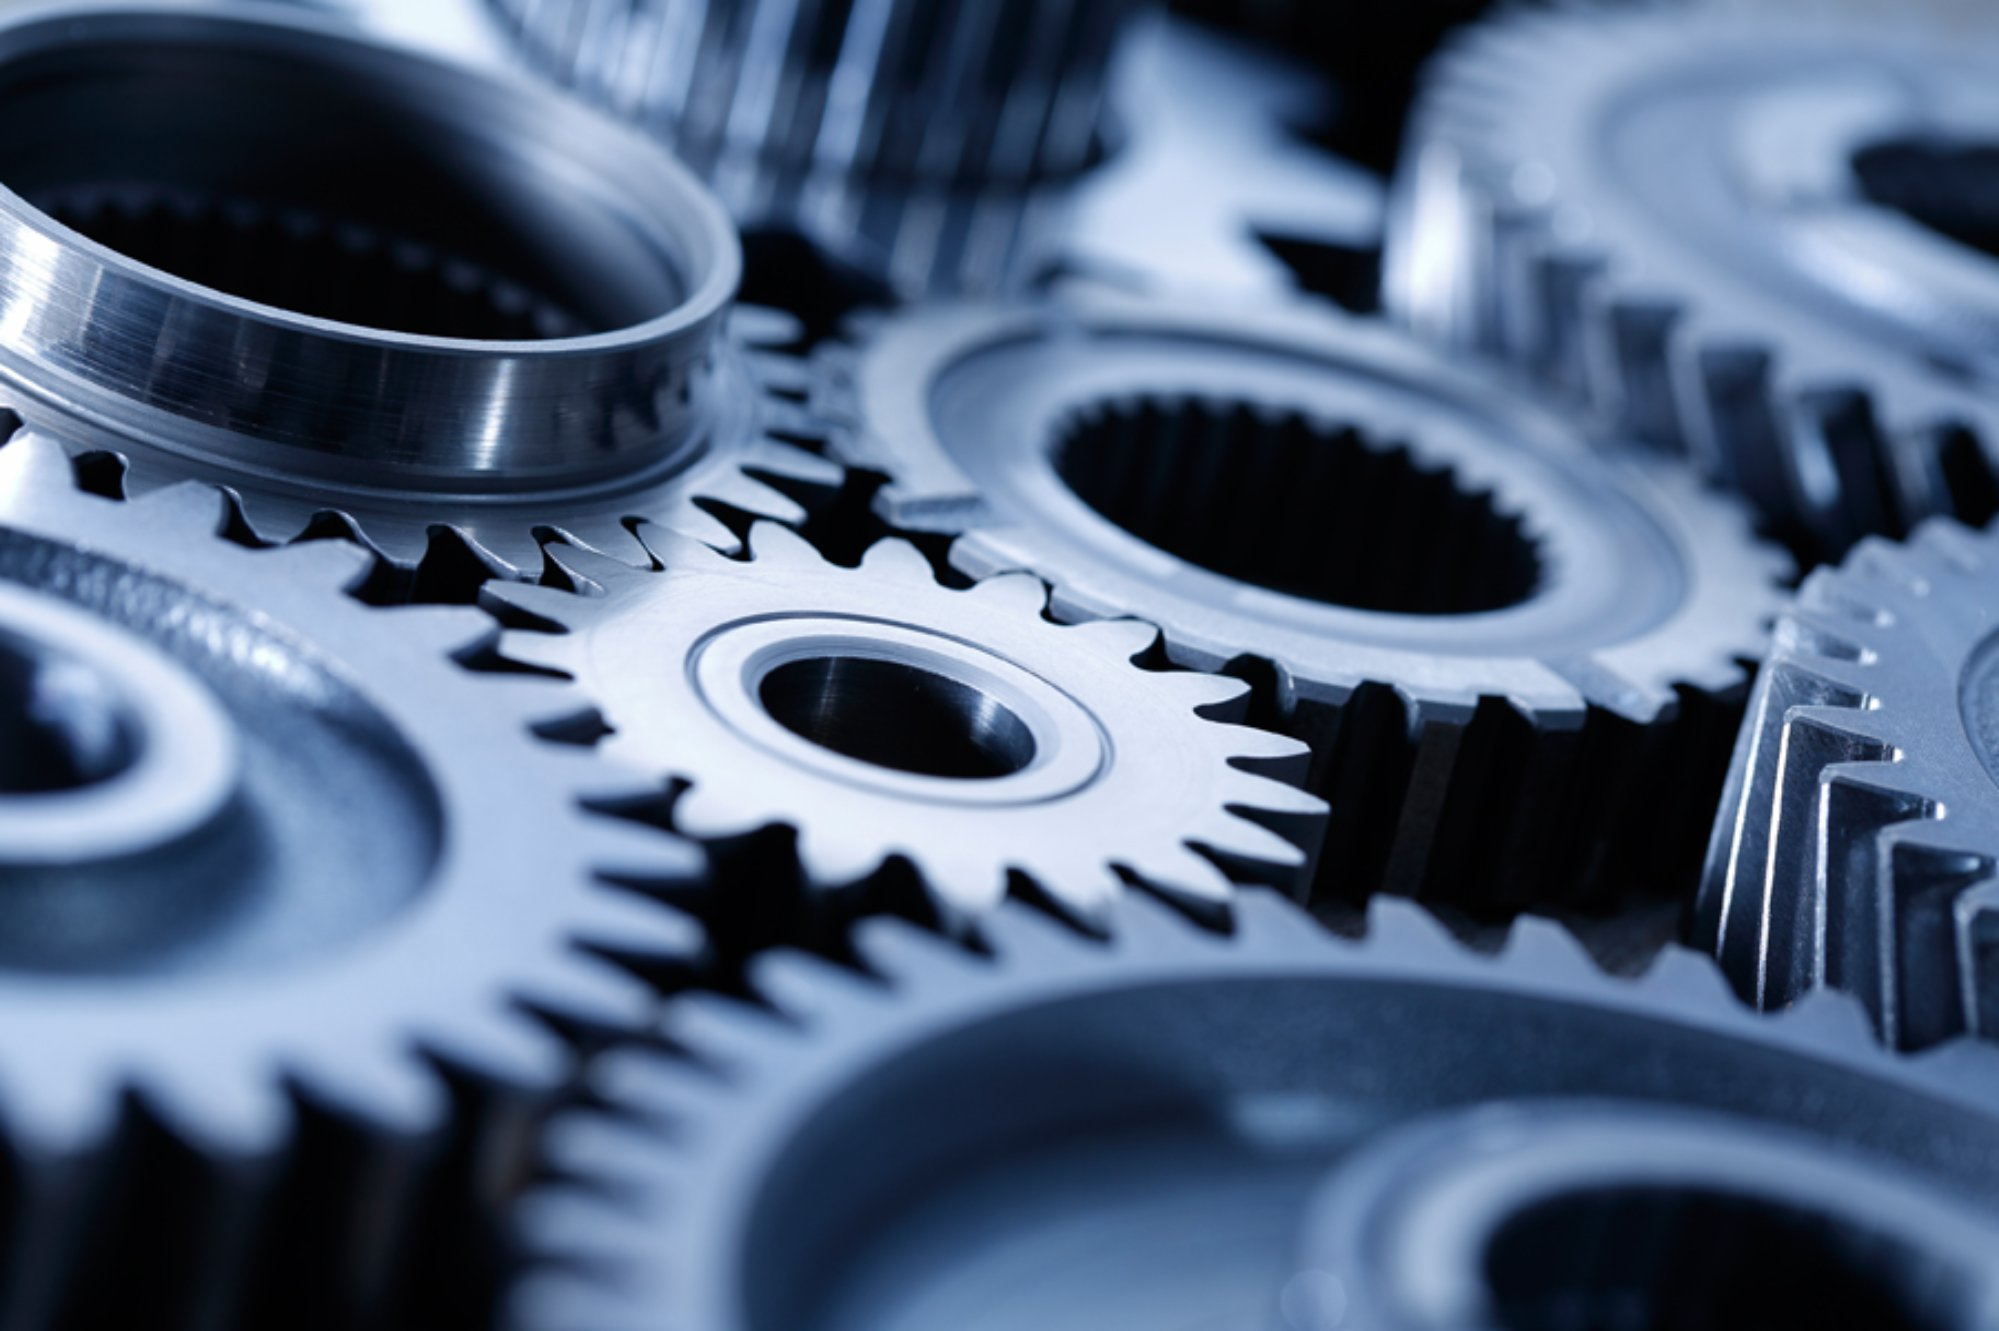 dp gears offers precision gears & machining